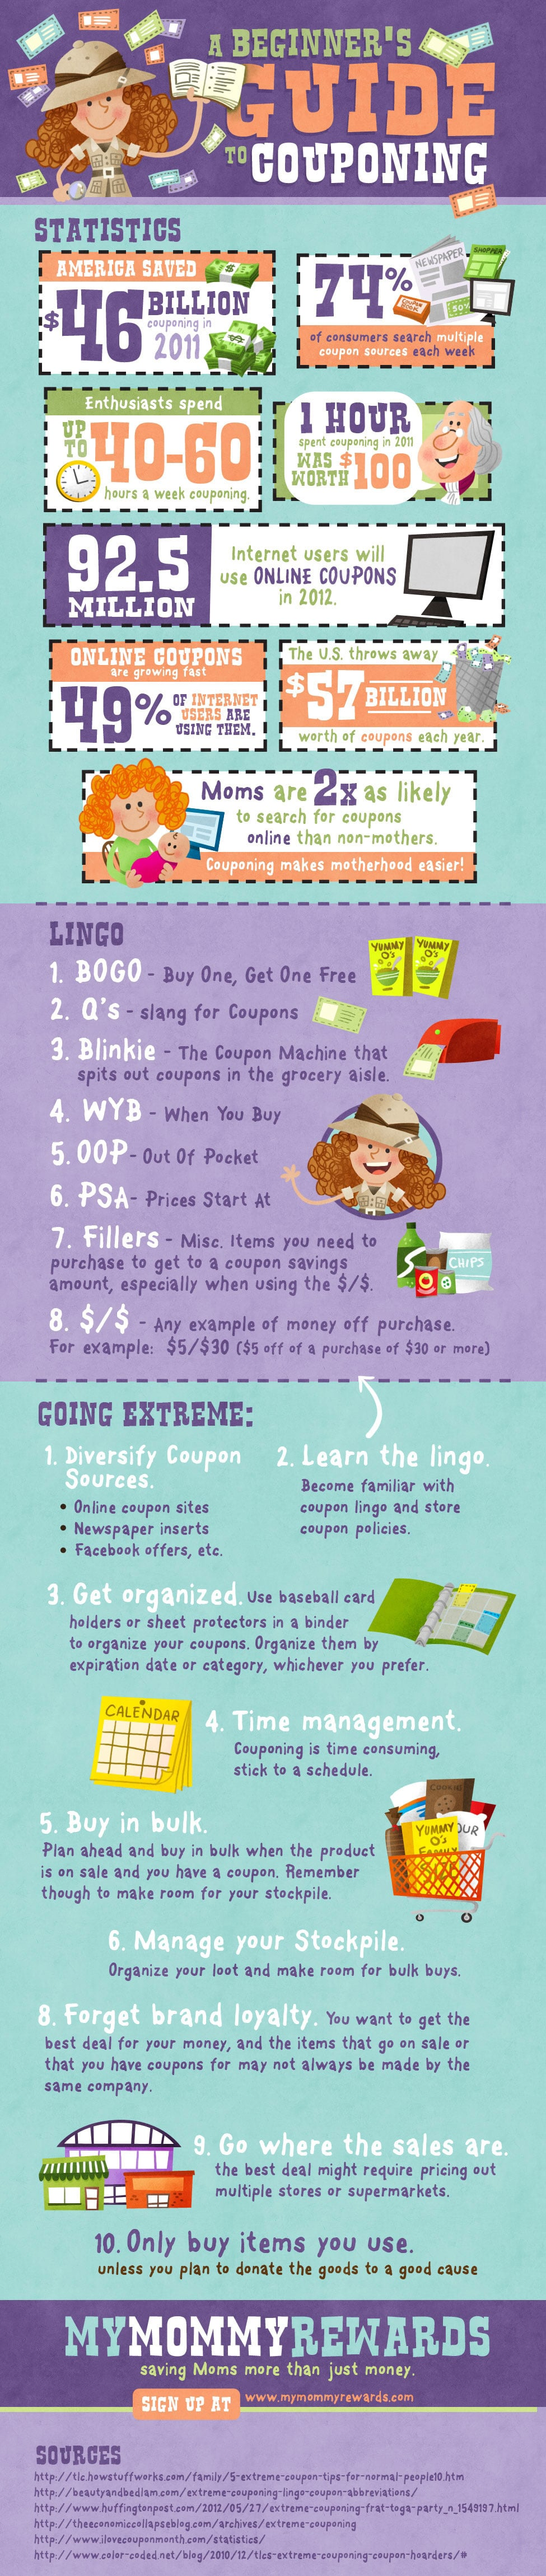 couponing-guide-for-beginners-infographic